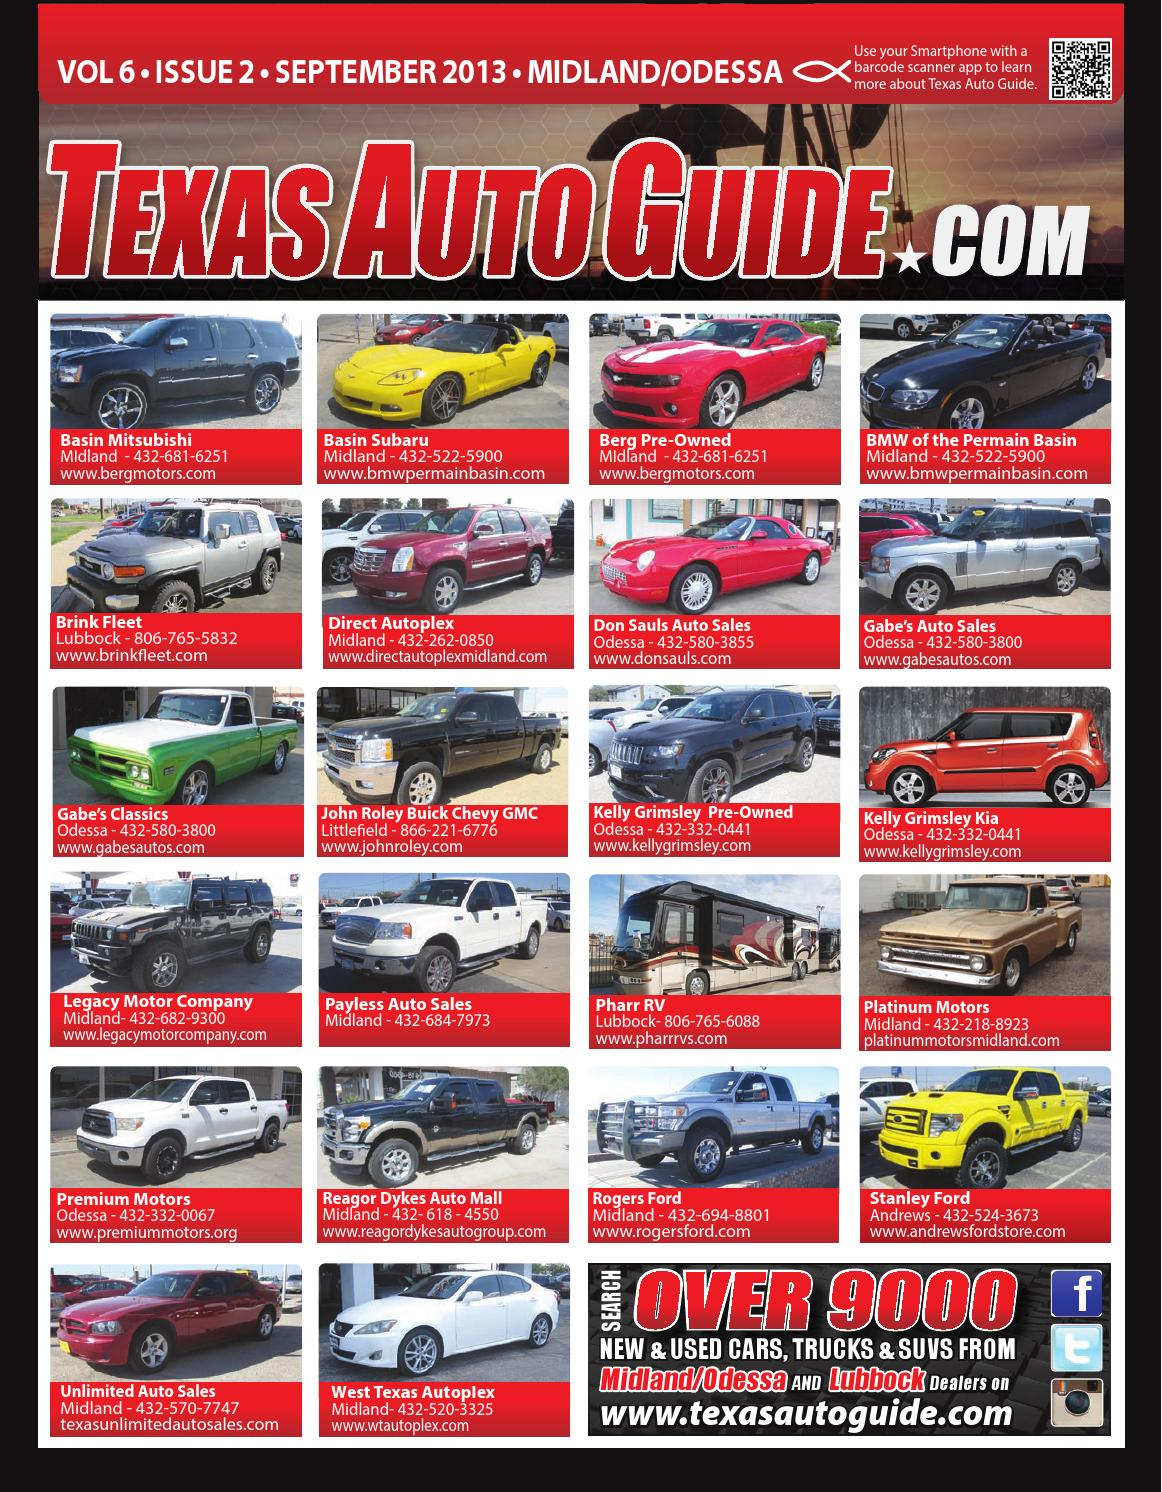 Texas auto guide midland odessa september 2013 by texas for Berg motors midland tx